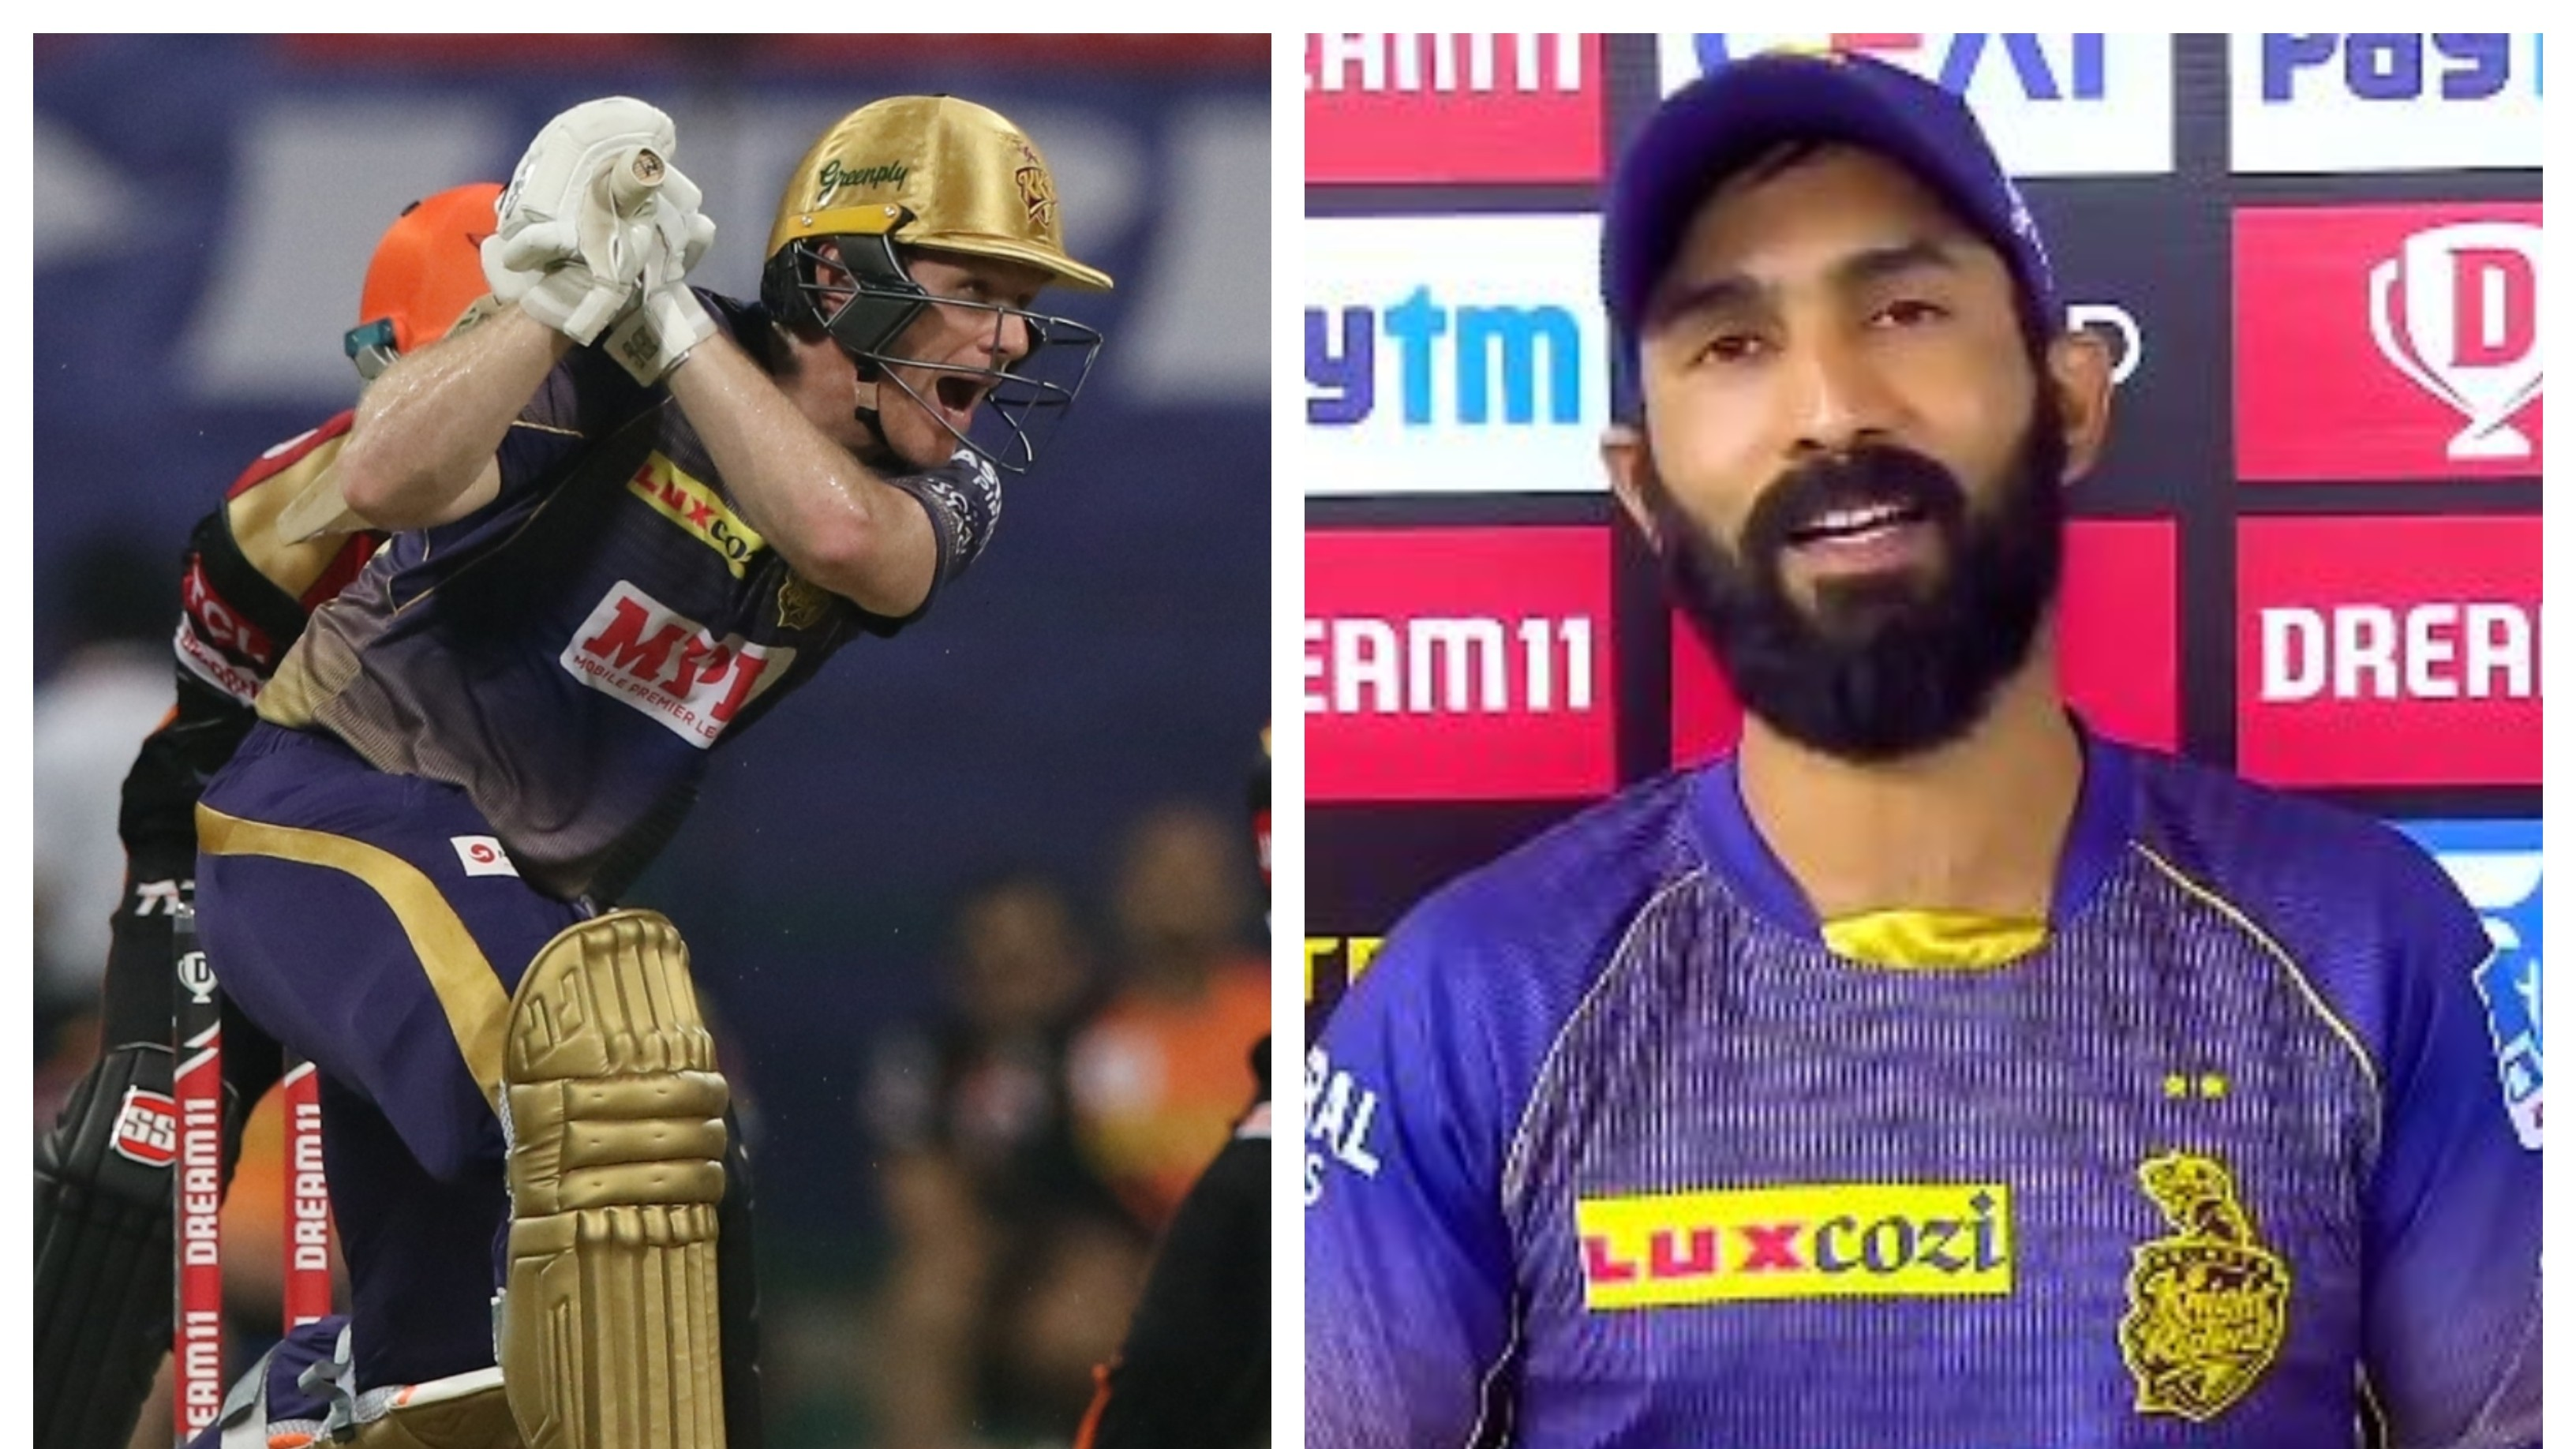 IPL 2020: Cricket fraternity reacts as Karthik hands over KKR captaincy to Morgan